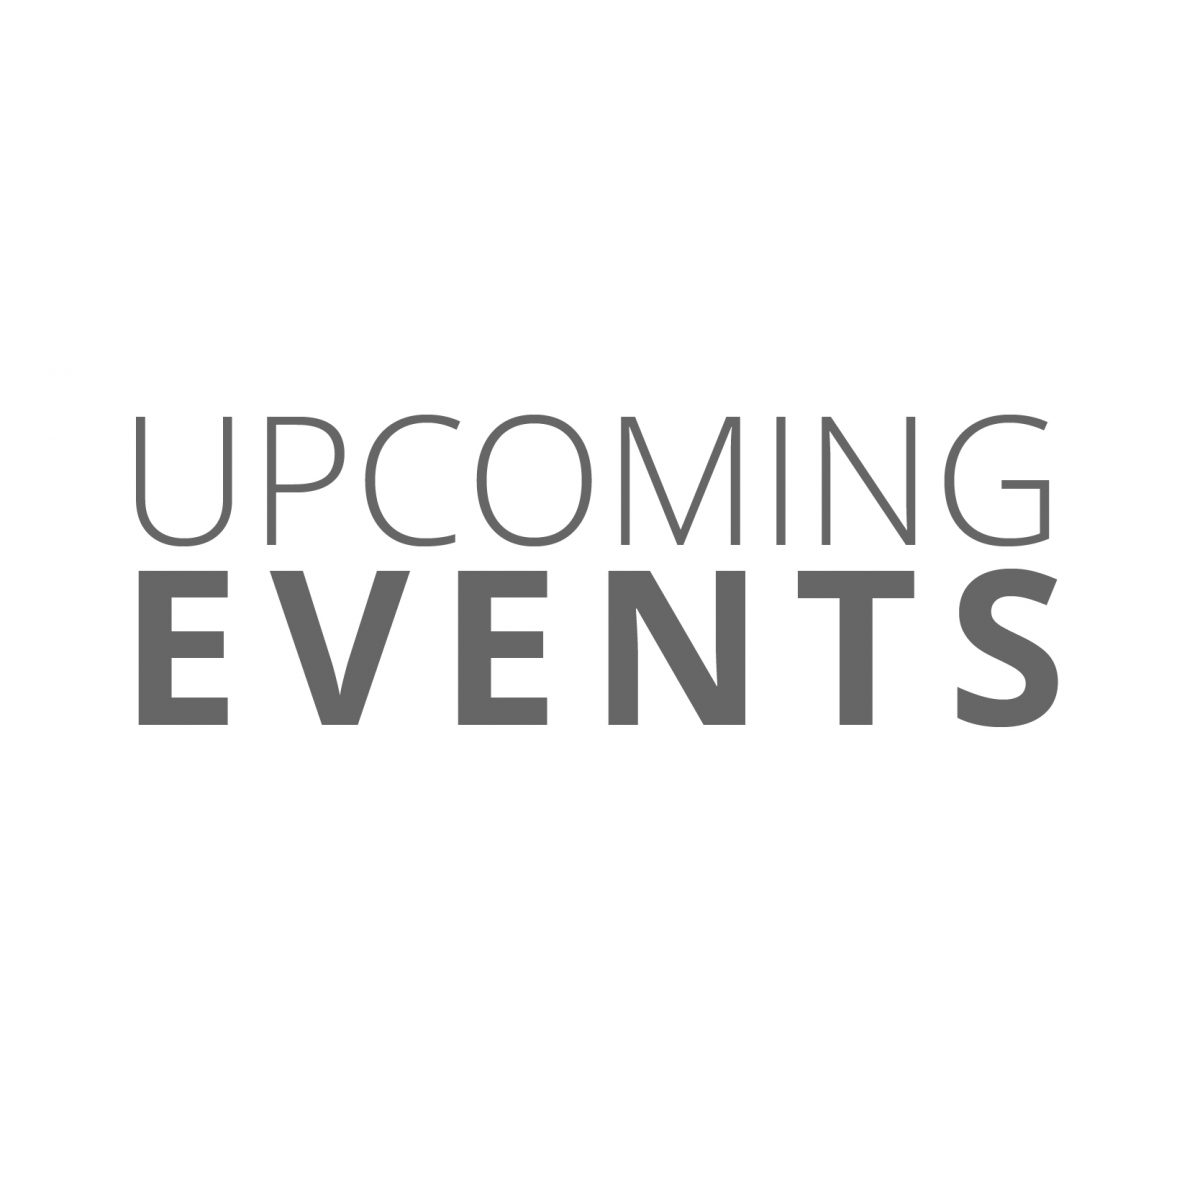 Upcoming Events header